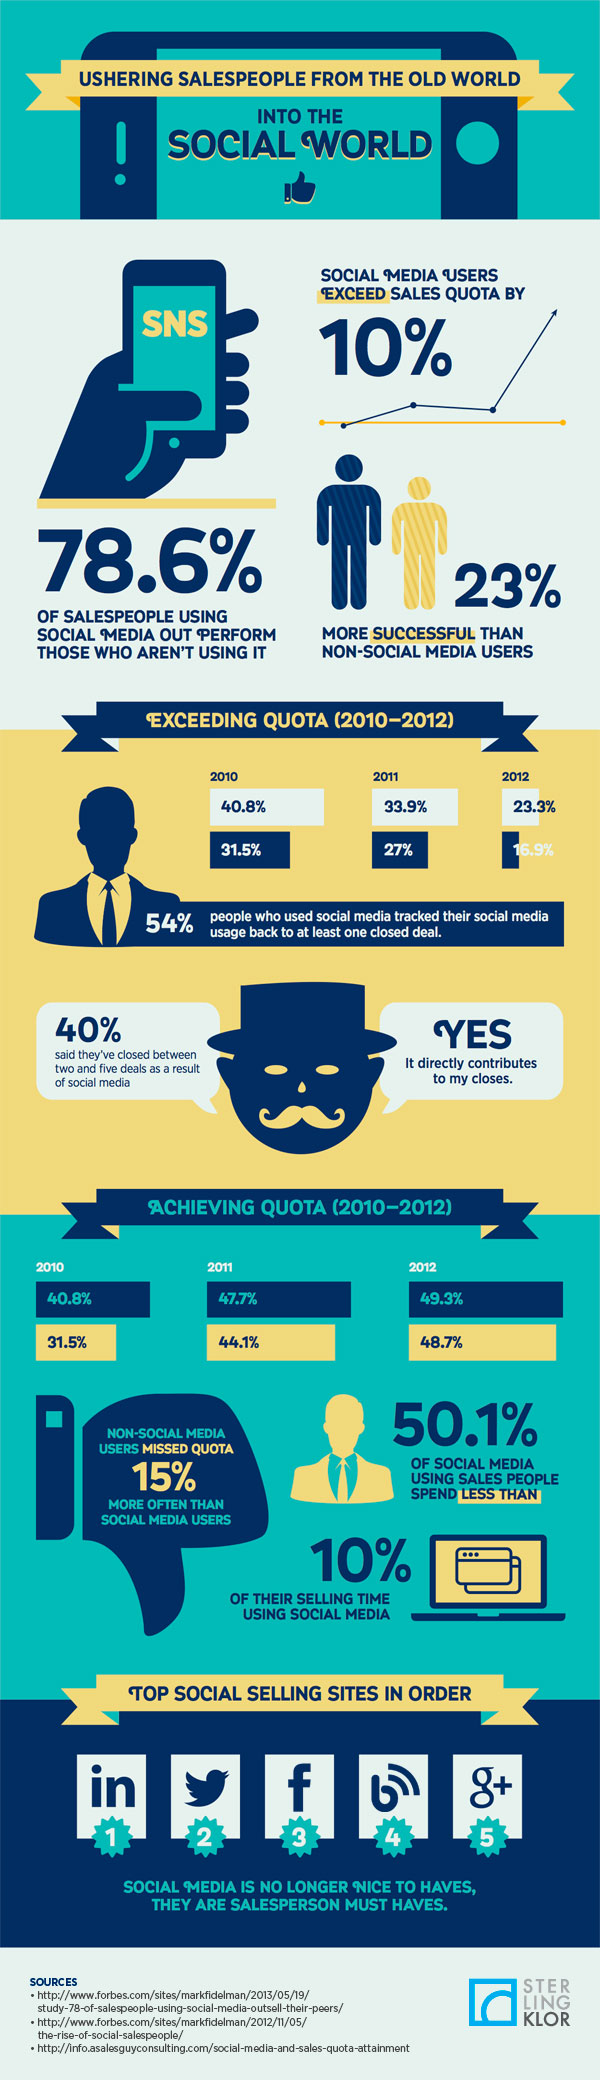 Ushering Sales From the Old World Into The Social World